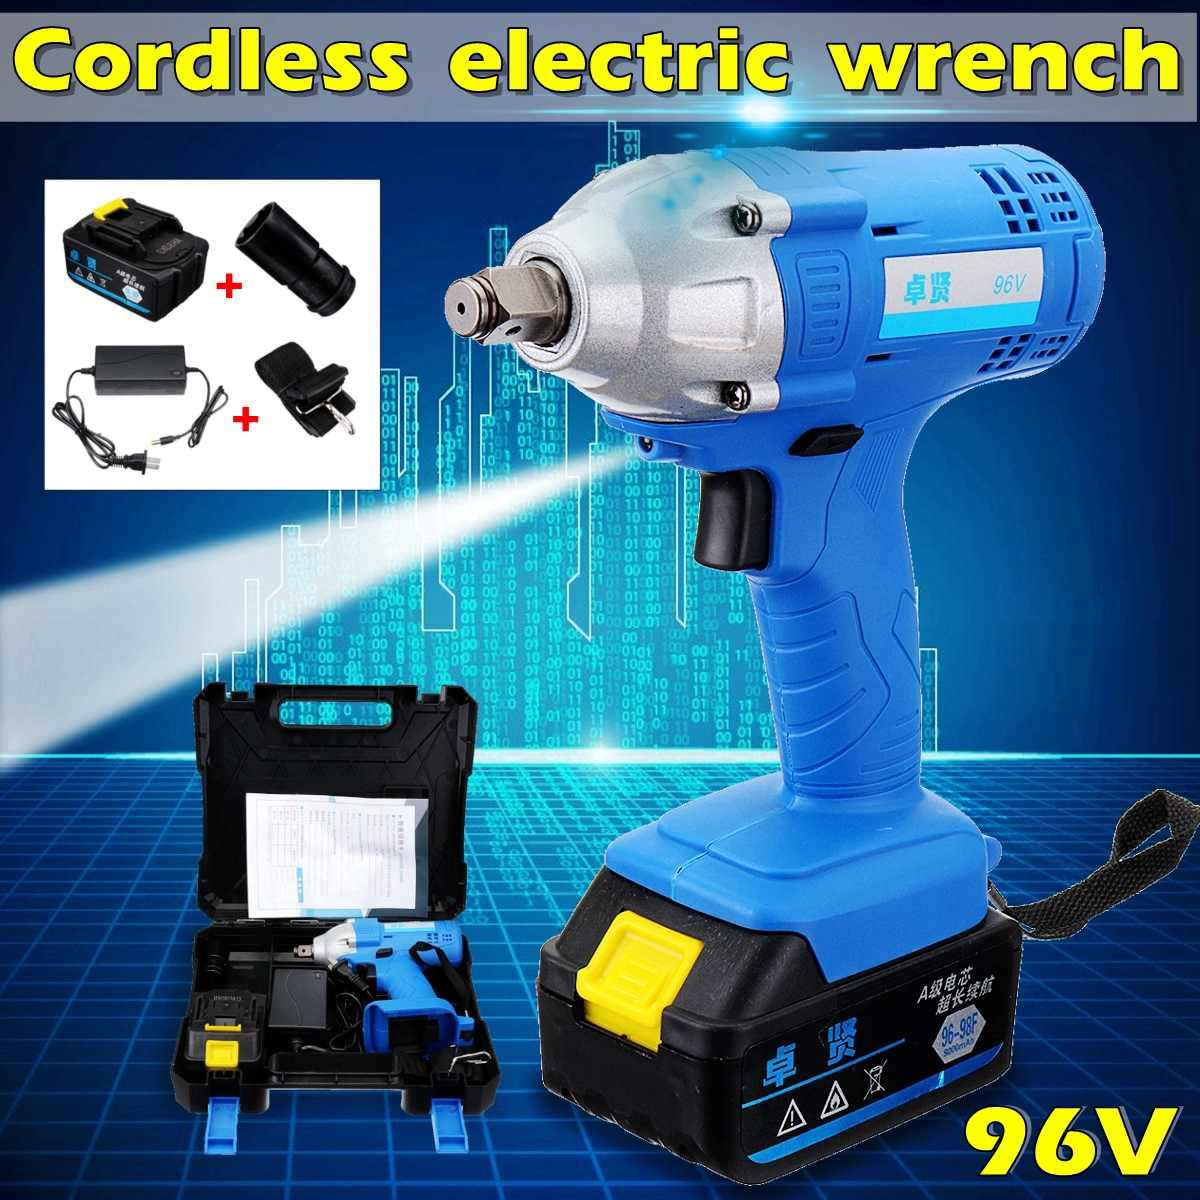 Cordless 9000mAh 2000W Electric Impact Wrench High Torque Chargeable Hammerdrill LED Lighting Hammer Power ToolsCordless 9000mAh 2000W Electric Impact Wrench High Torque Chargeable Hammerdrill LED Lighting Hammer Power Tools